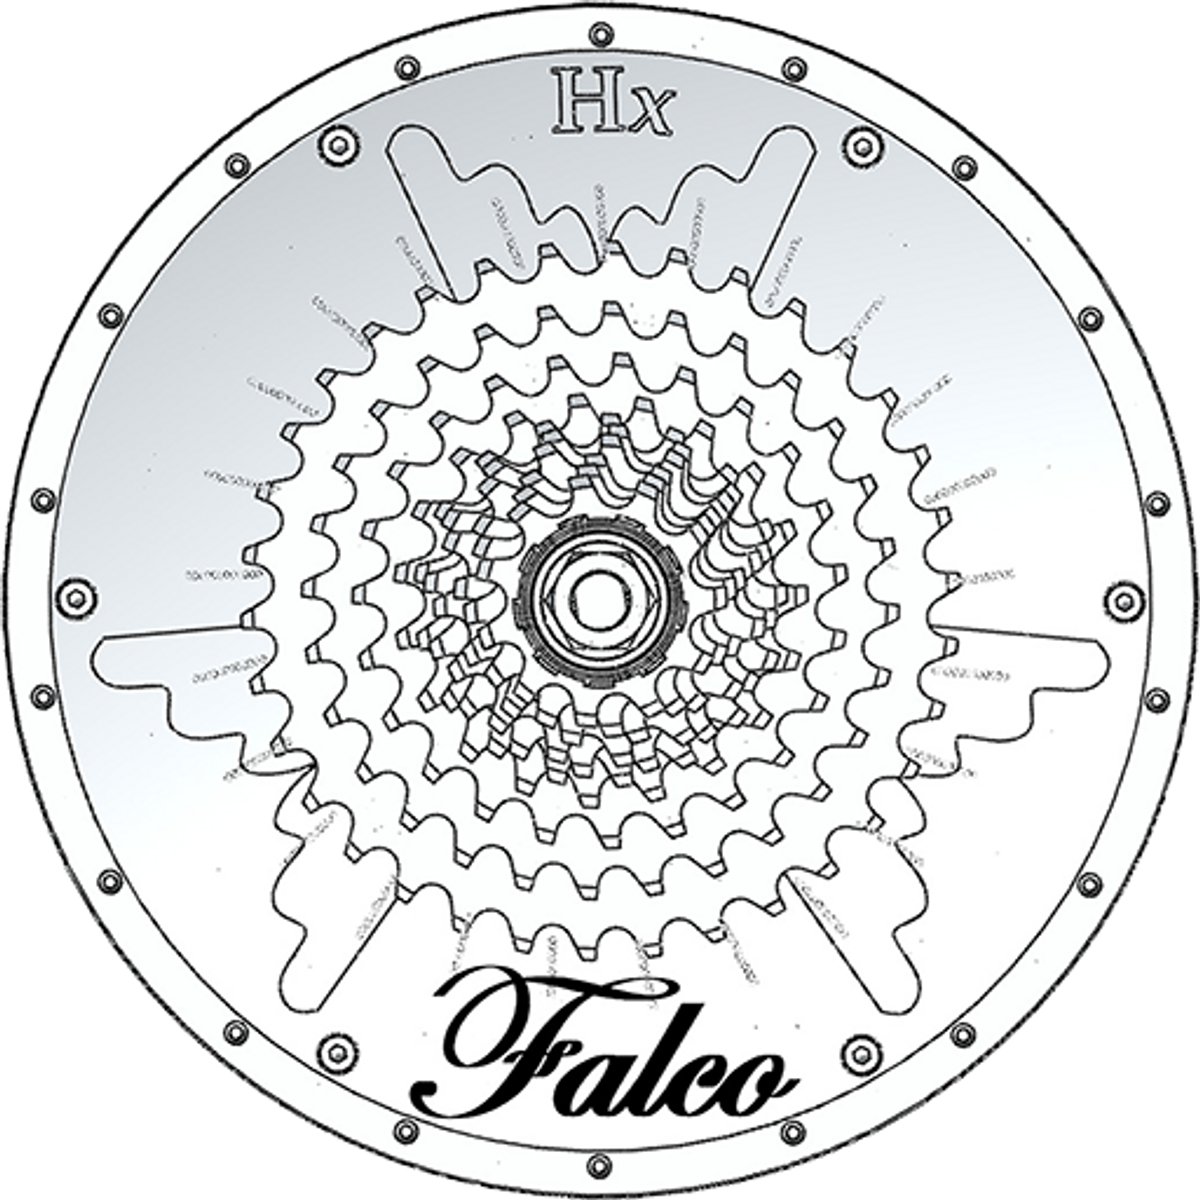 This is the latest code for the Hx-500W motor (2016 or earlier version/freewheel model)